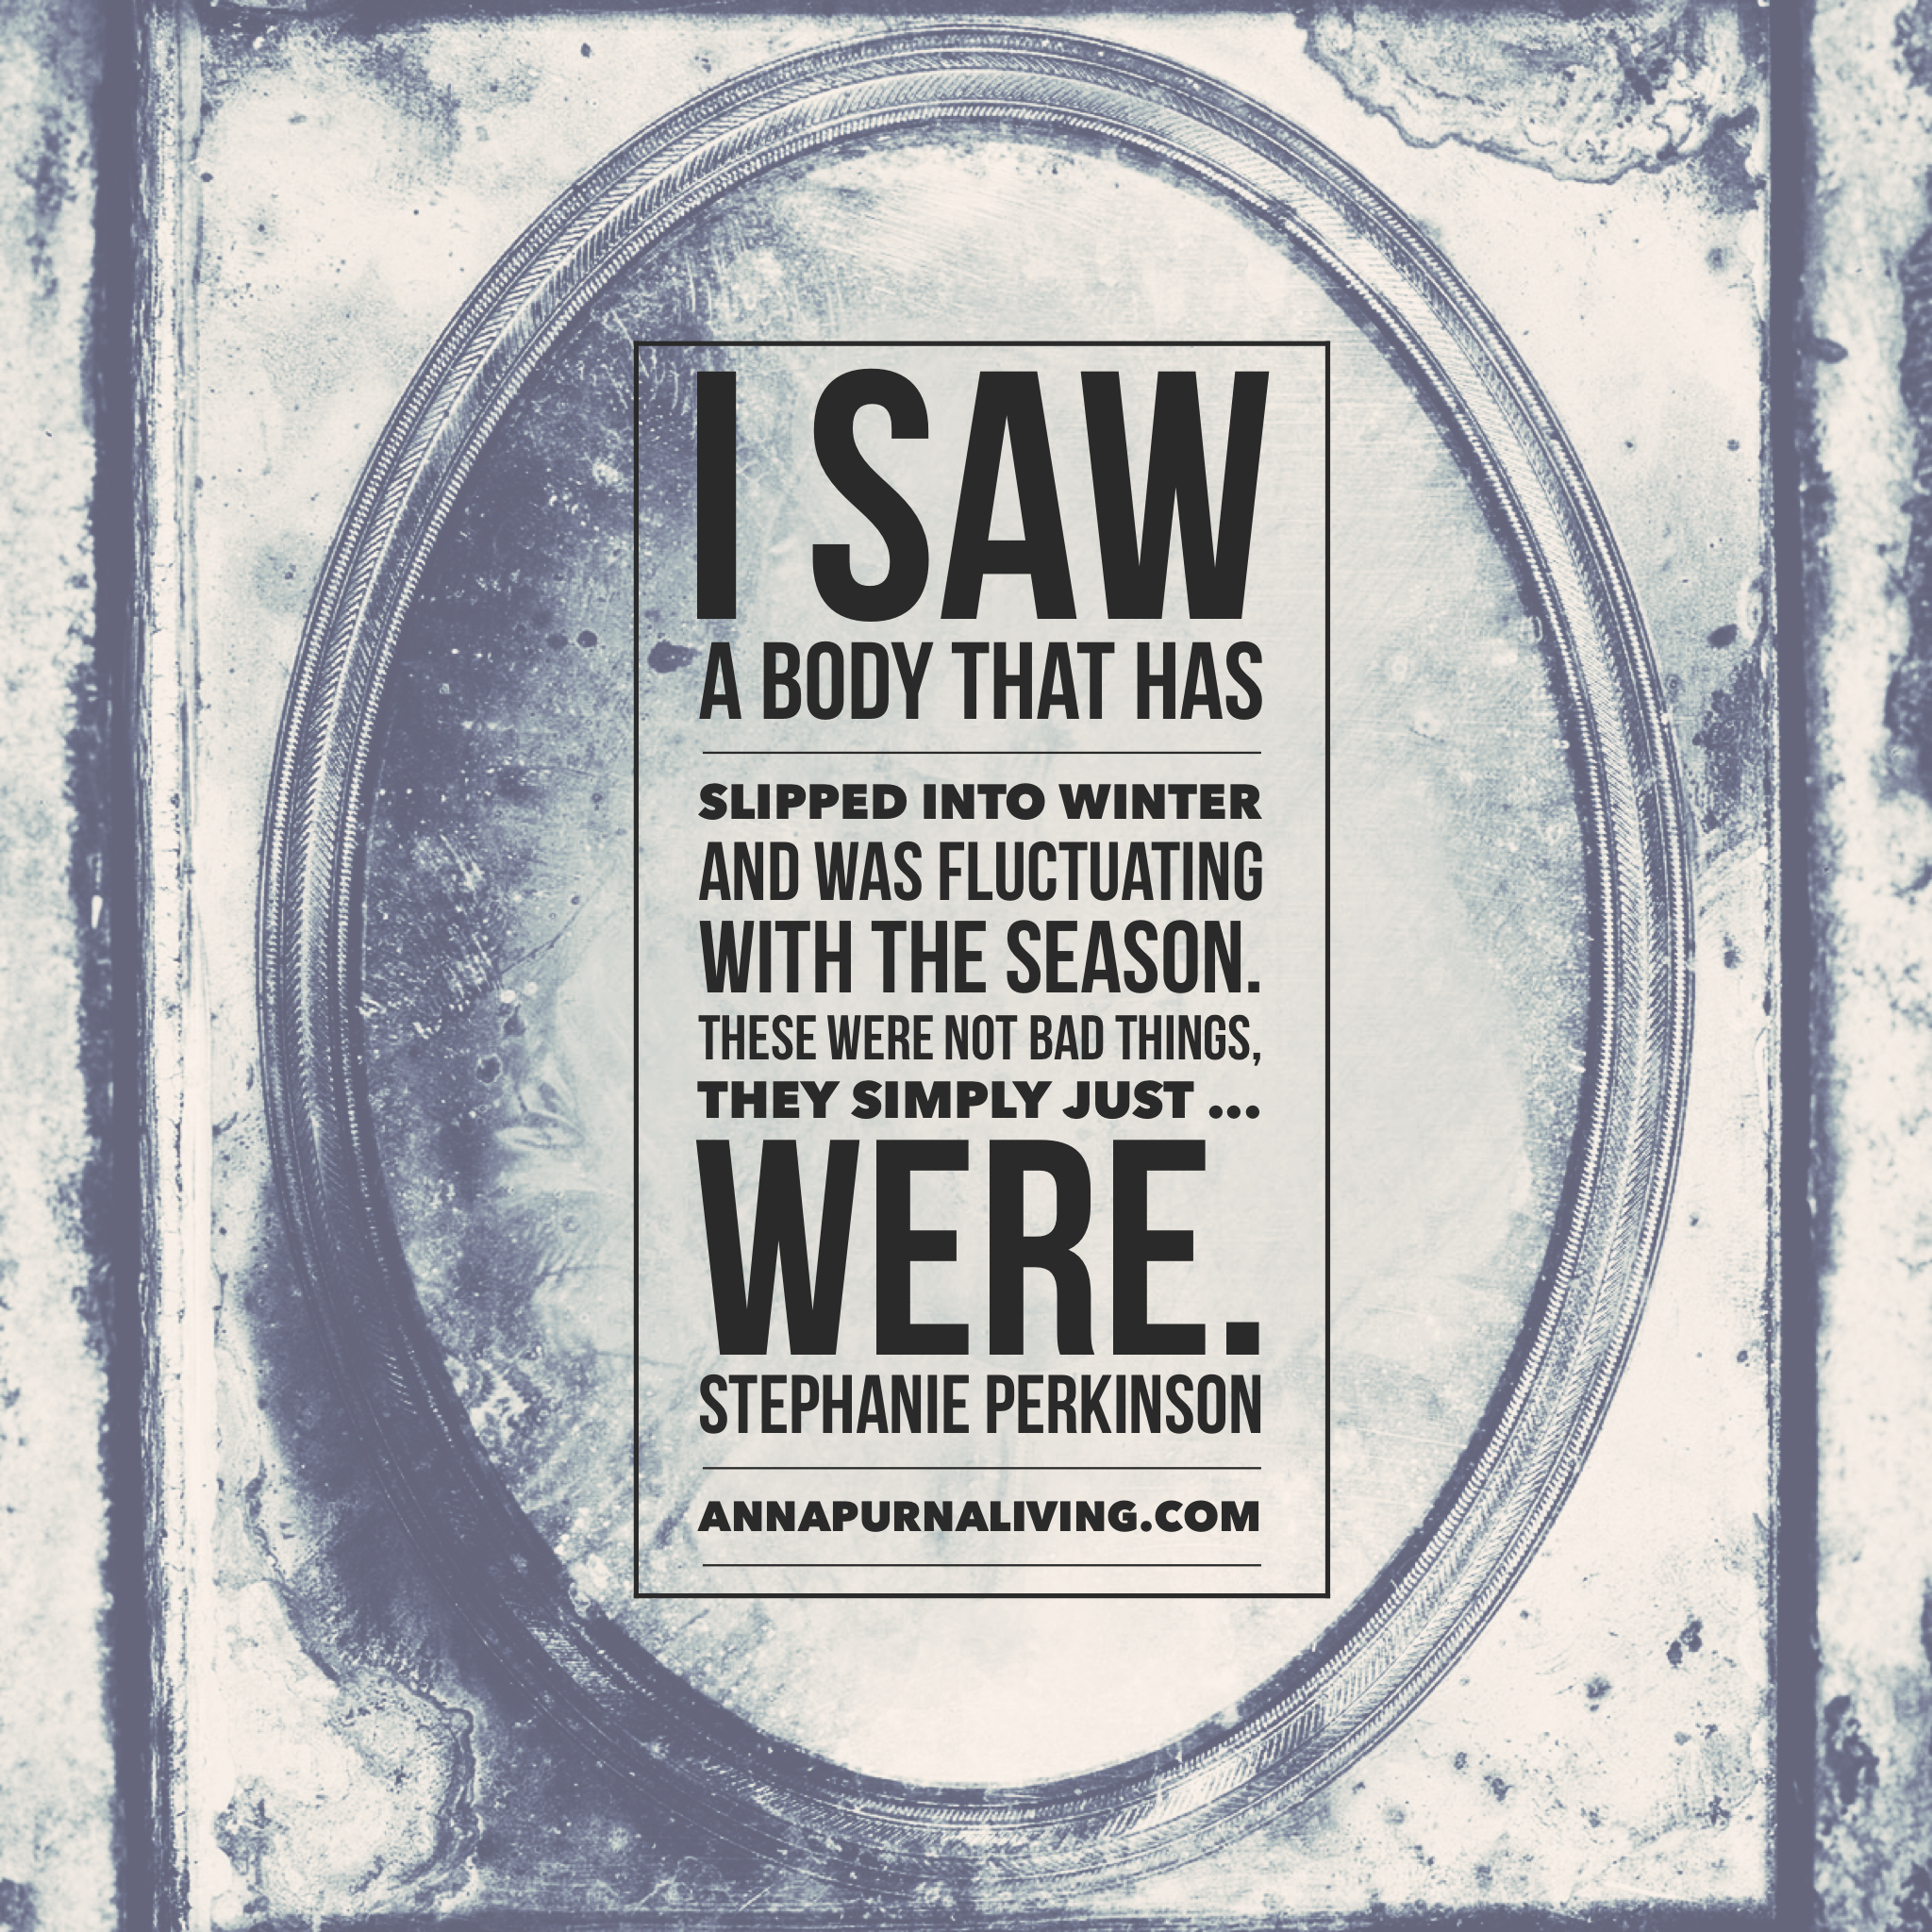 I saw a body that has slipped into winter. By Stephanie Perkinson via AnnapurnaLiving.com #AnnapurnaLiving